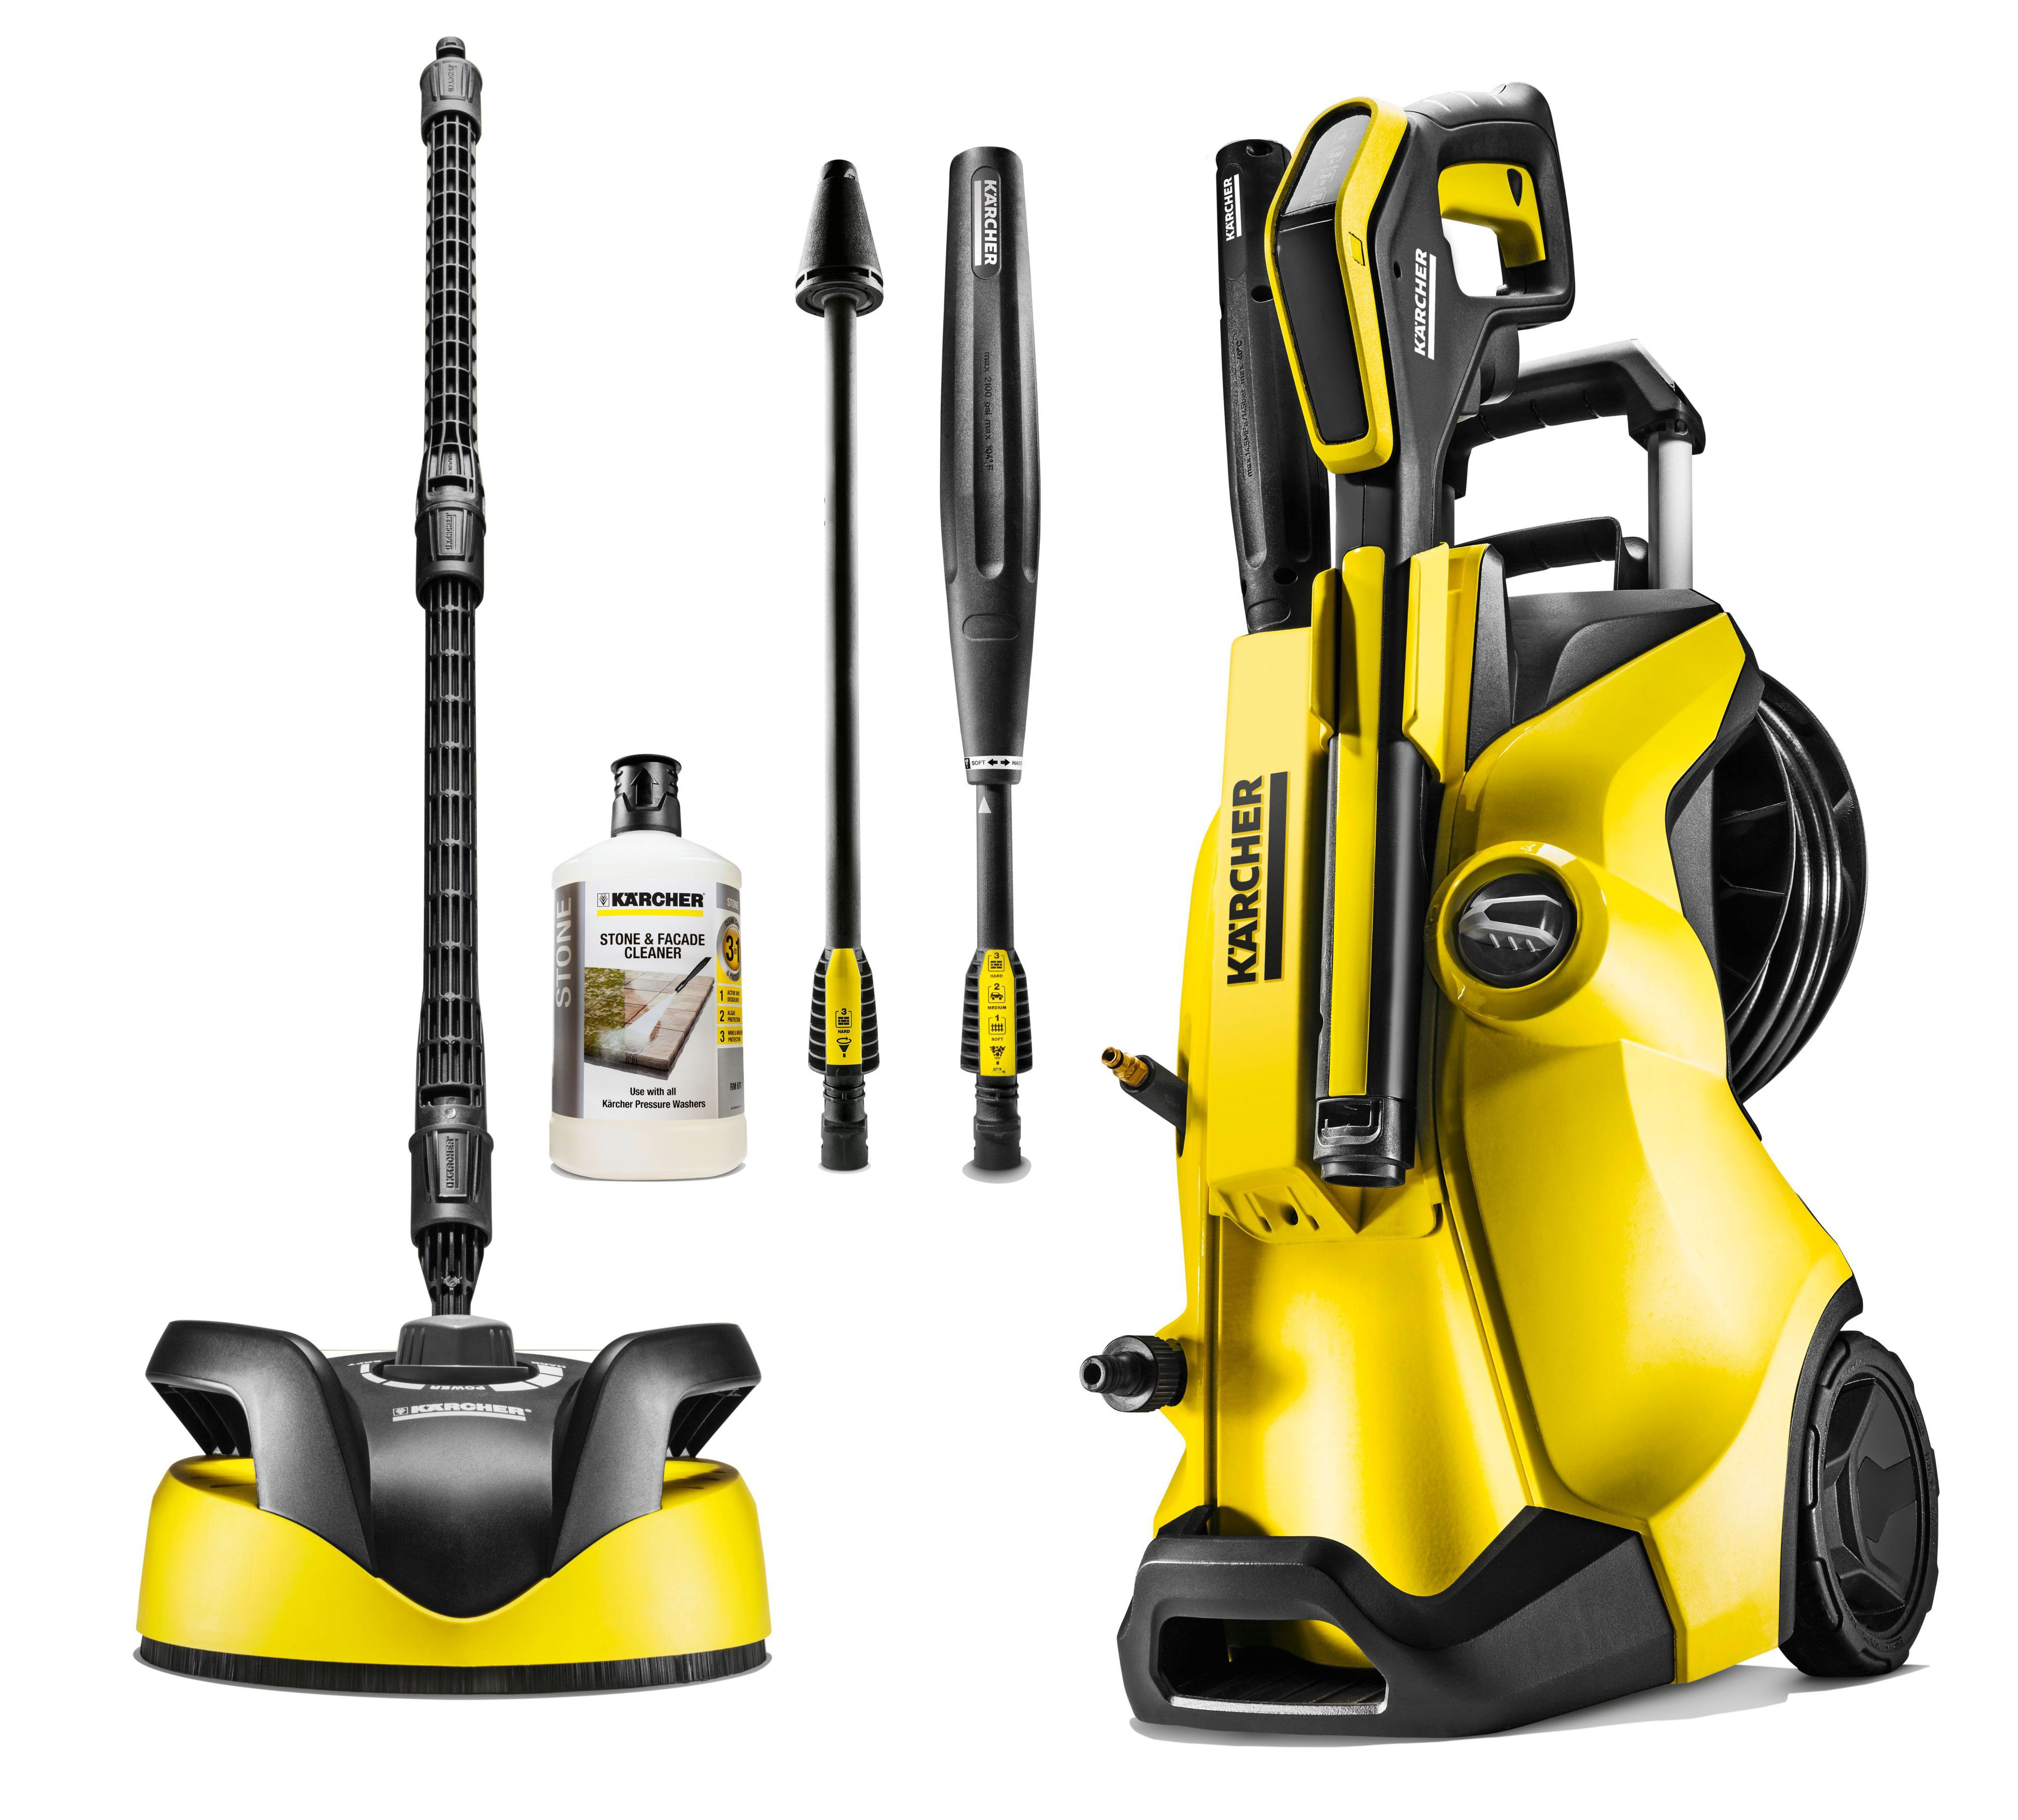 karcher k4 premium full control home pressure washer. Black Bedroom Furniture Sets. Home Design Ideas